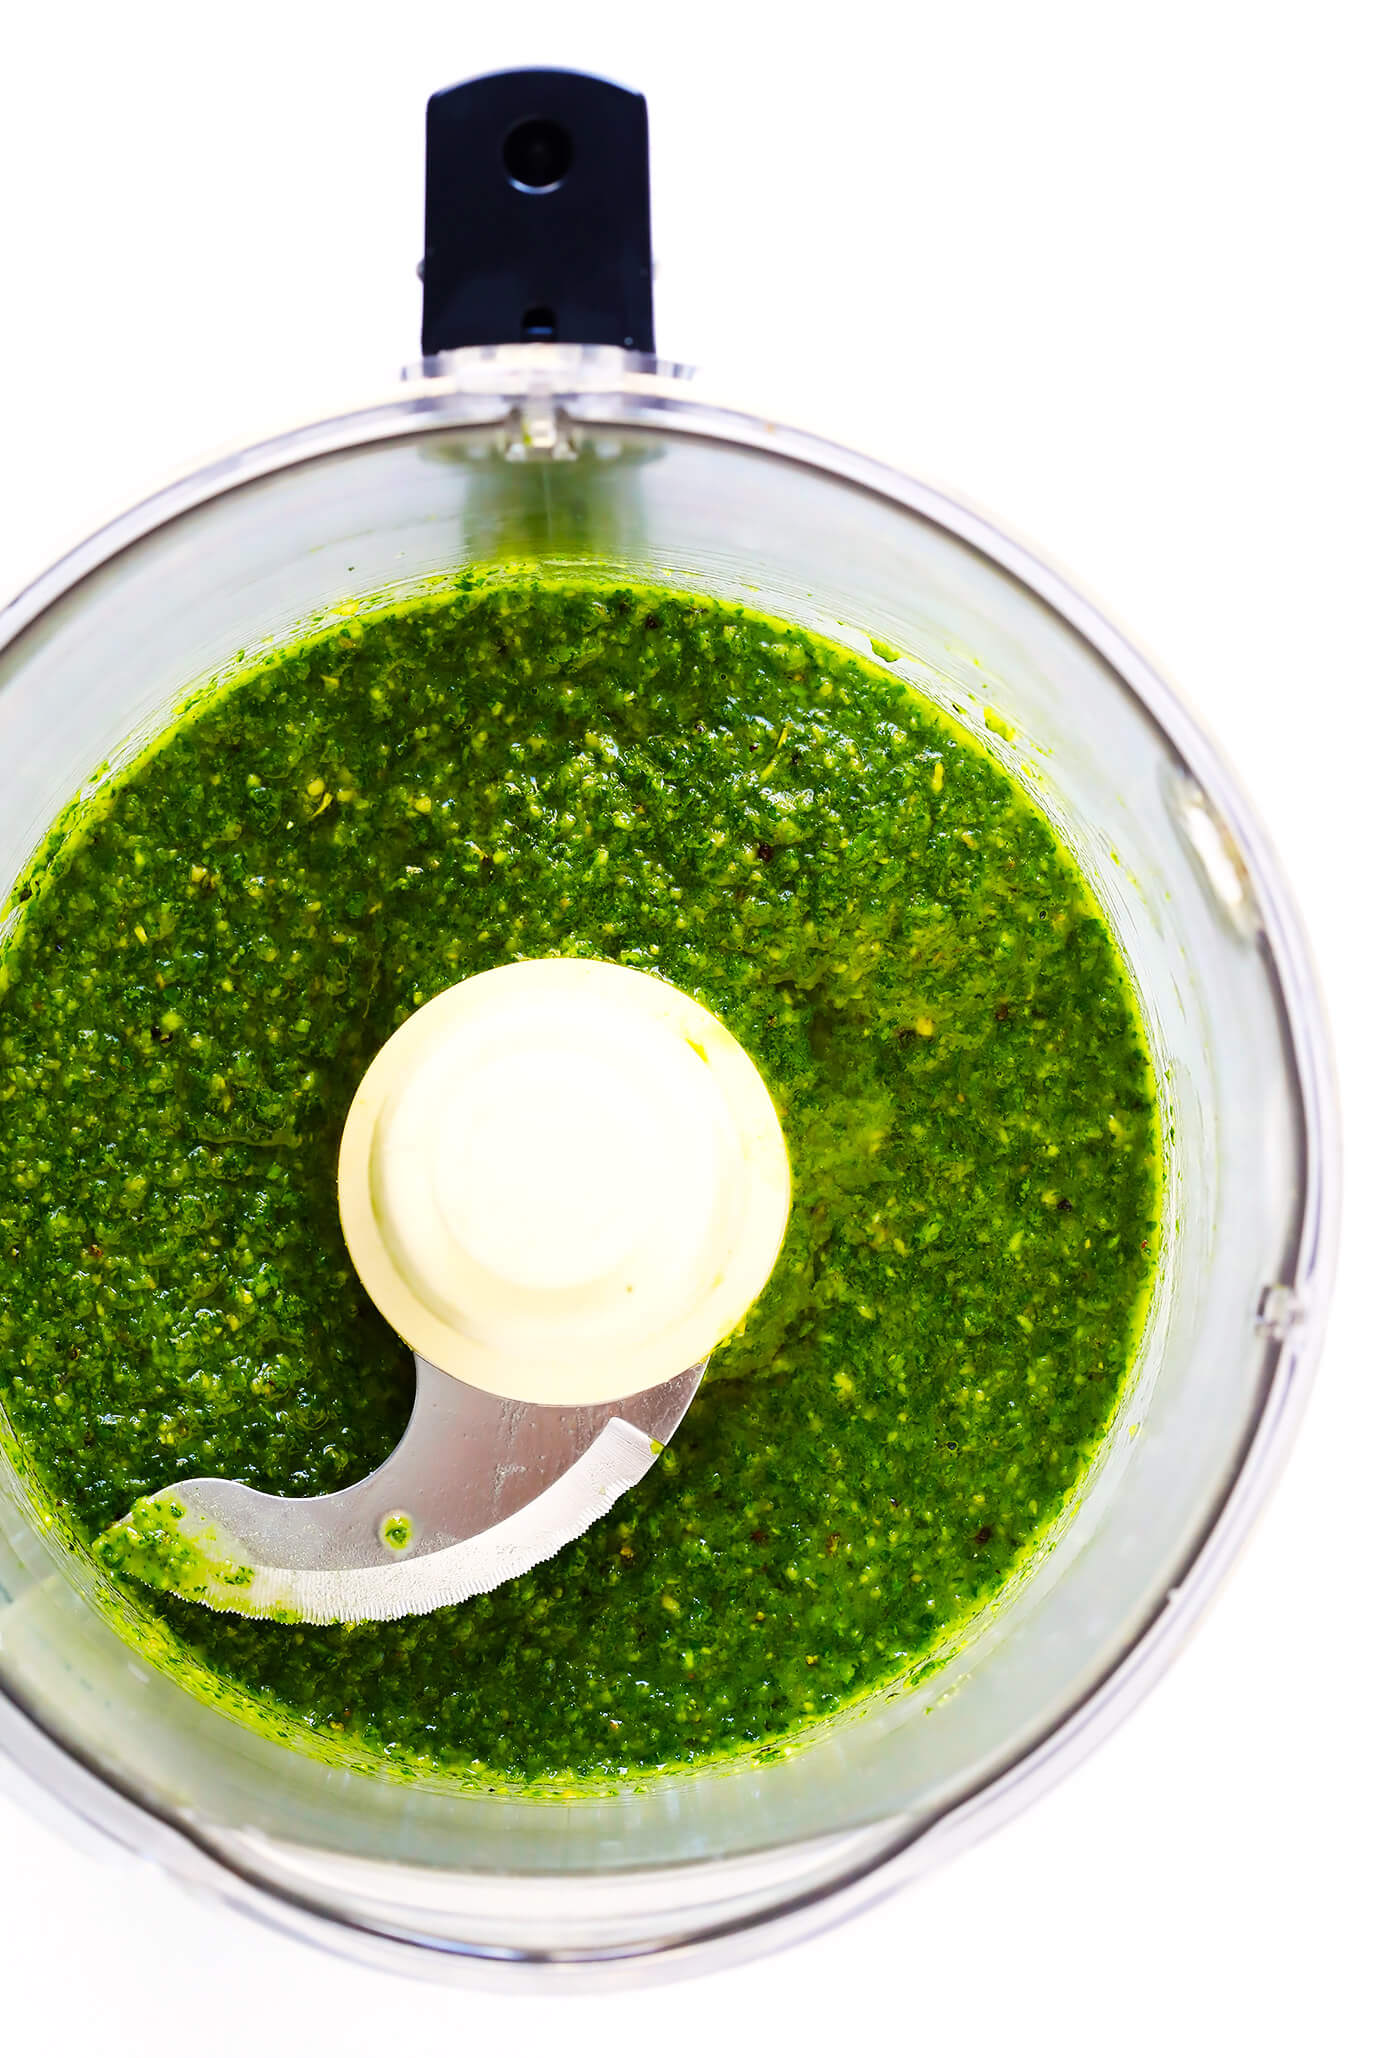 How To Make Pesto in a Blender or Food Processor